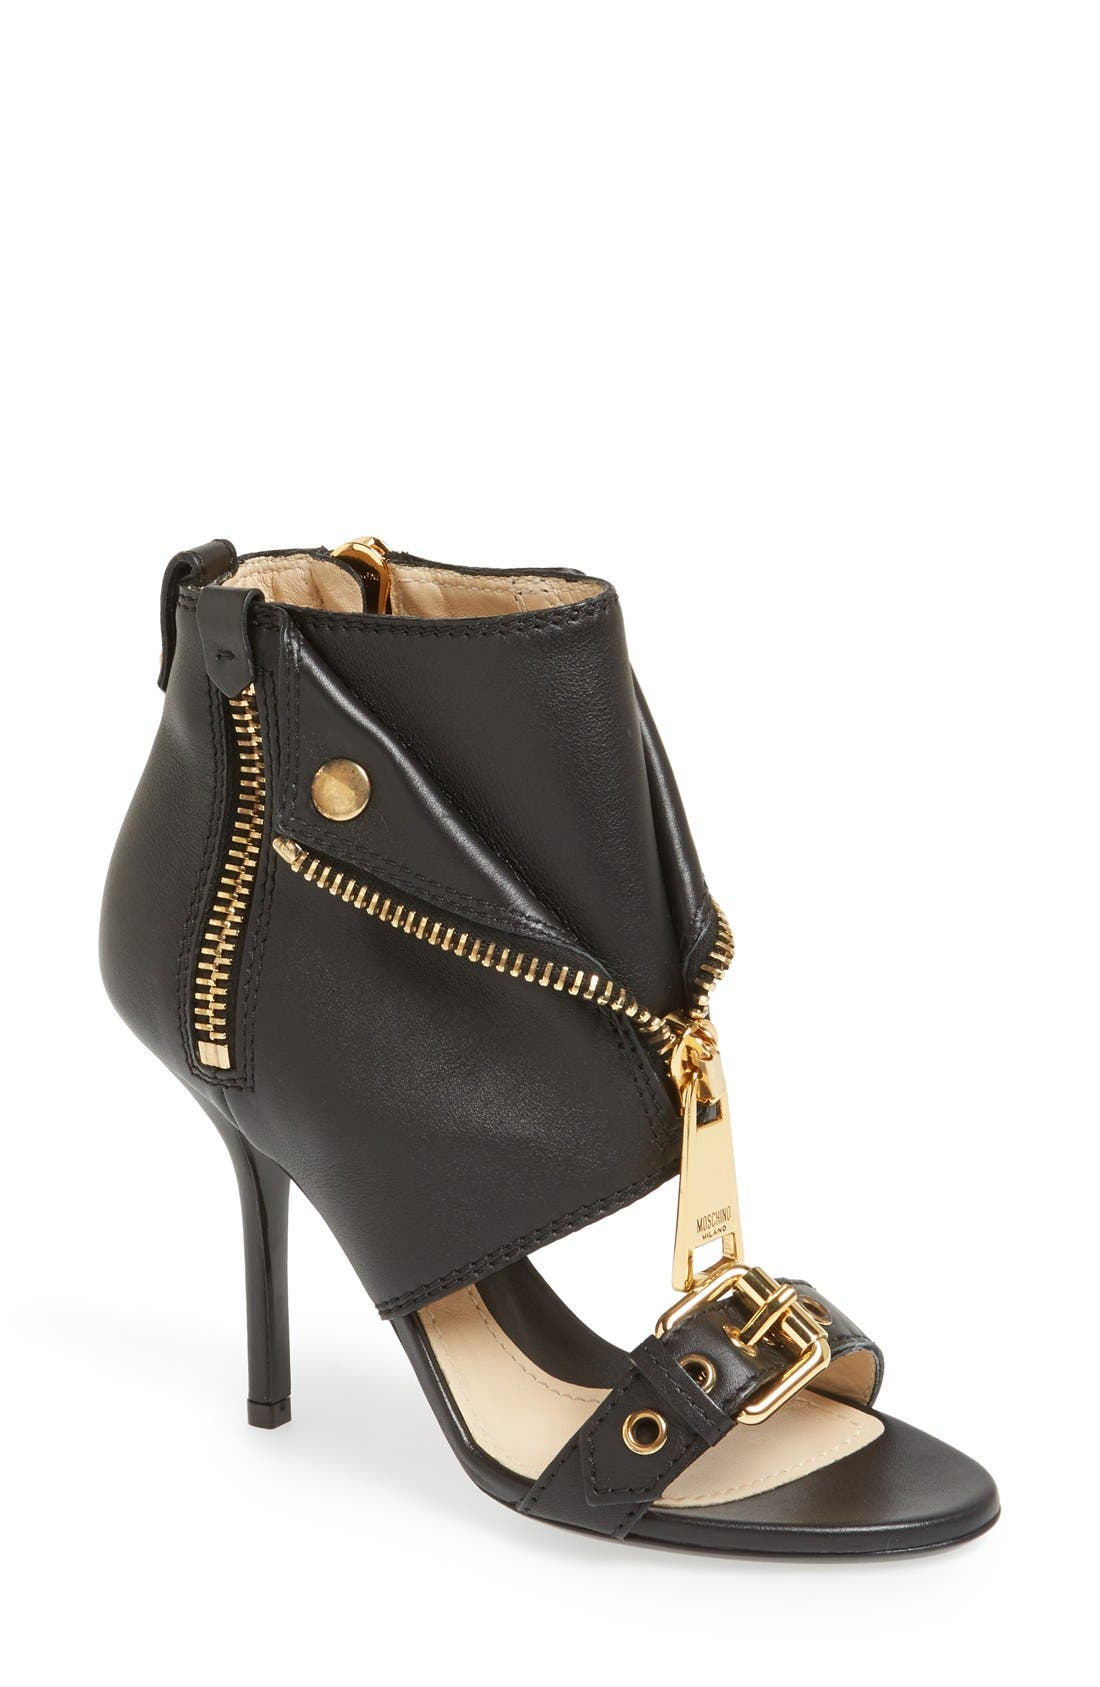 Alternate Image 1 Selected - Moschino 'Moto Jacket' Italian Calfskin Sandal (Women)